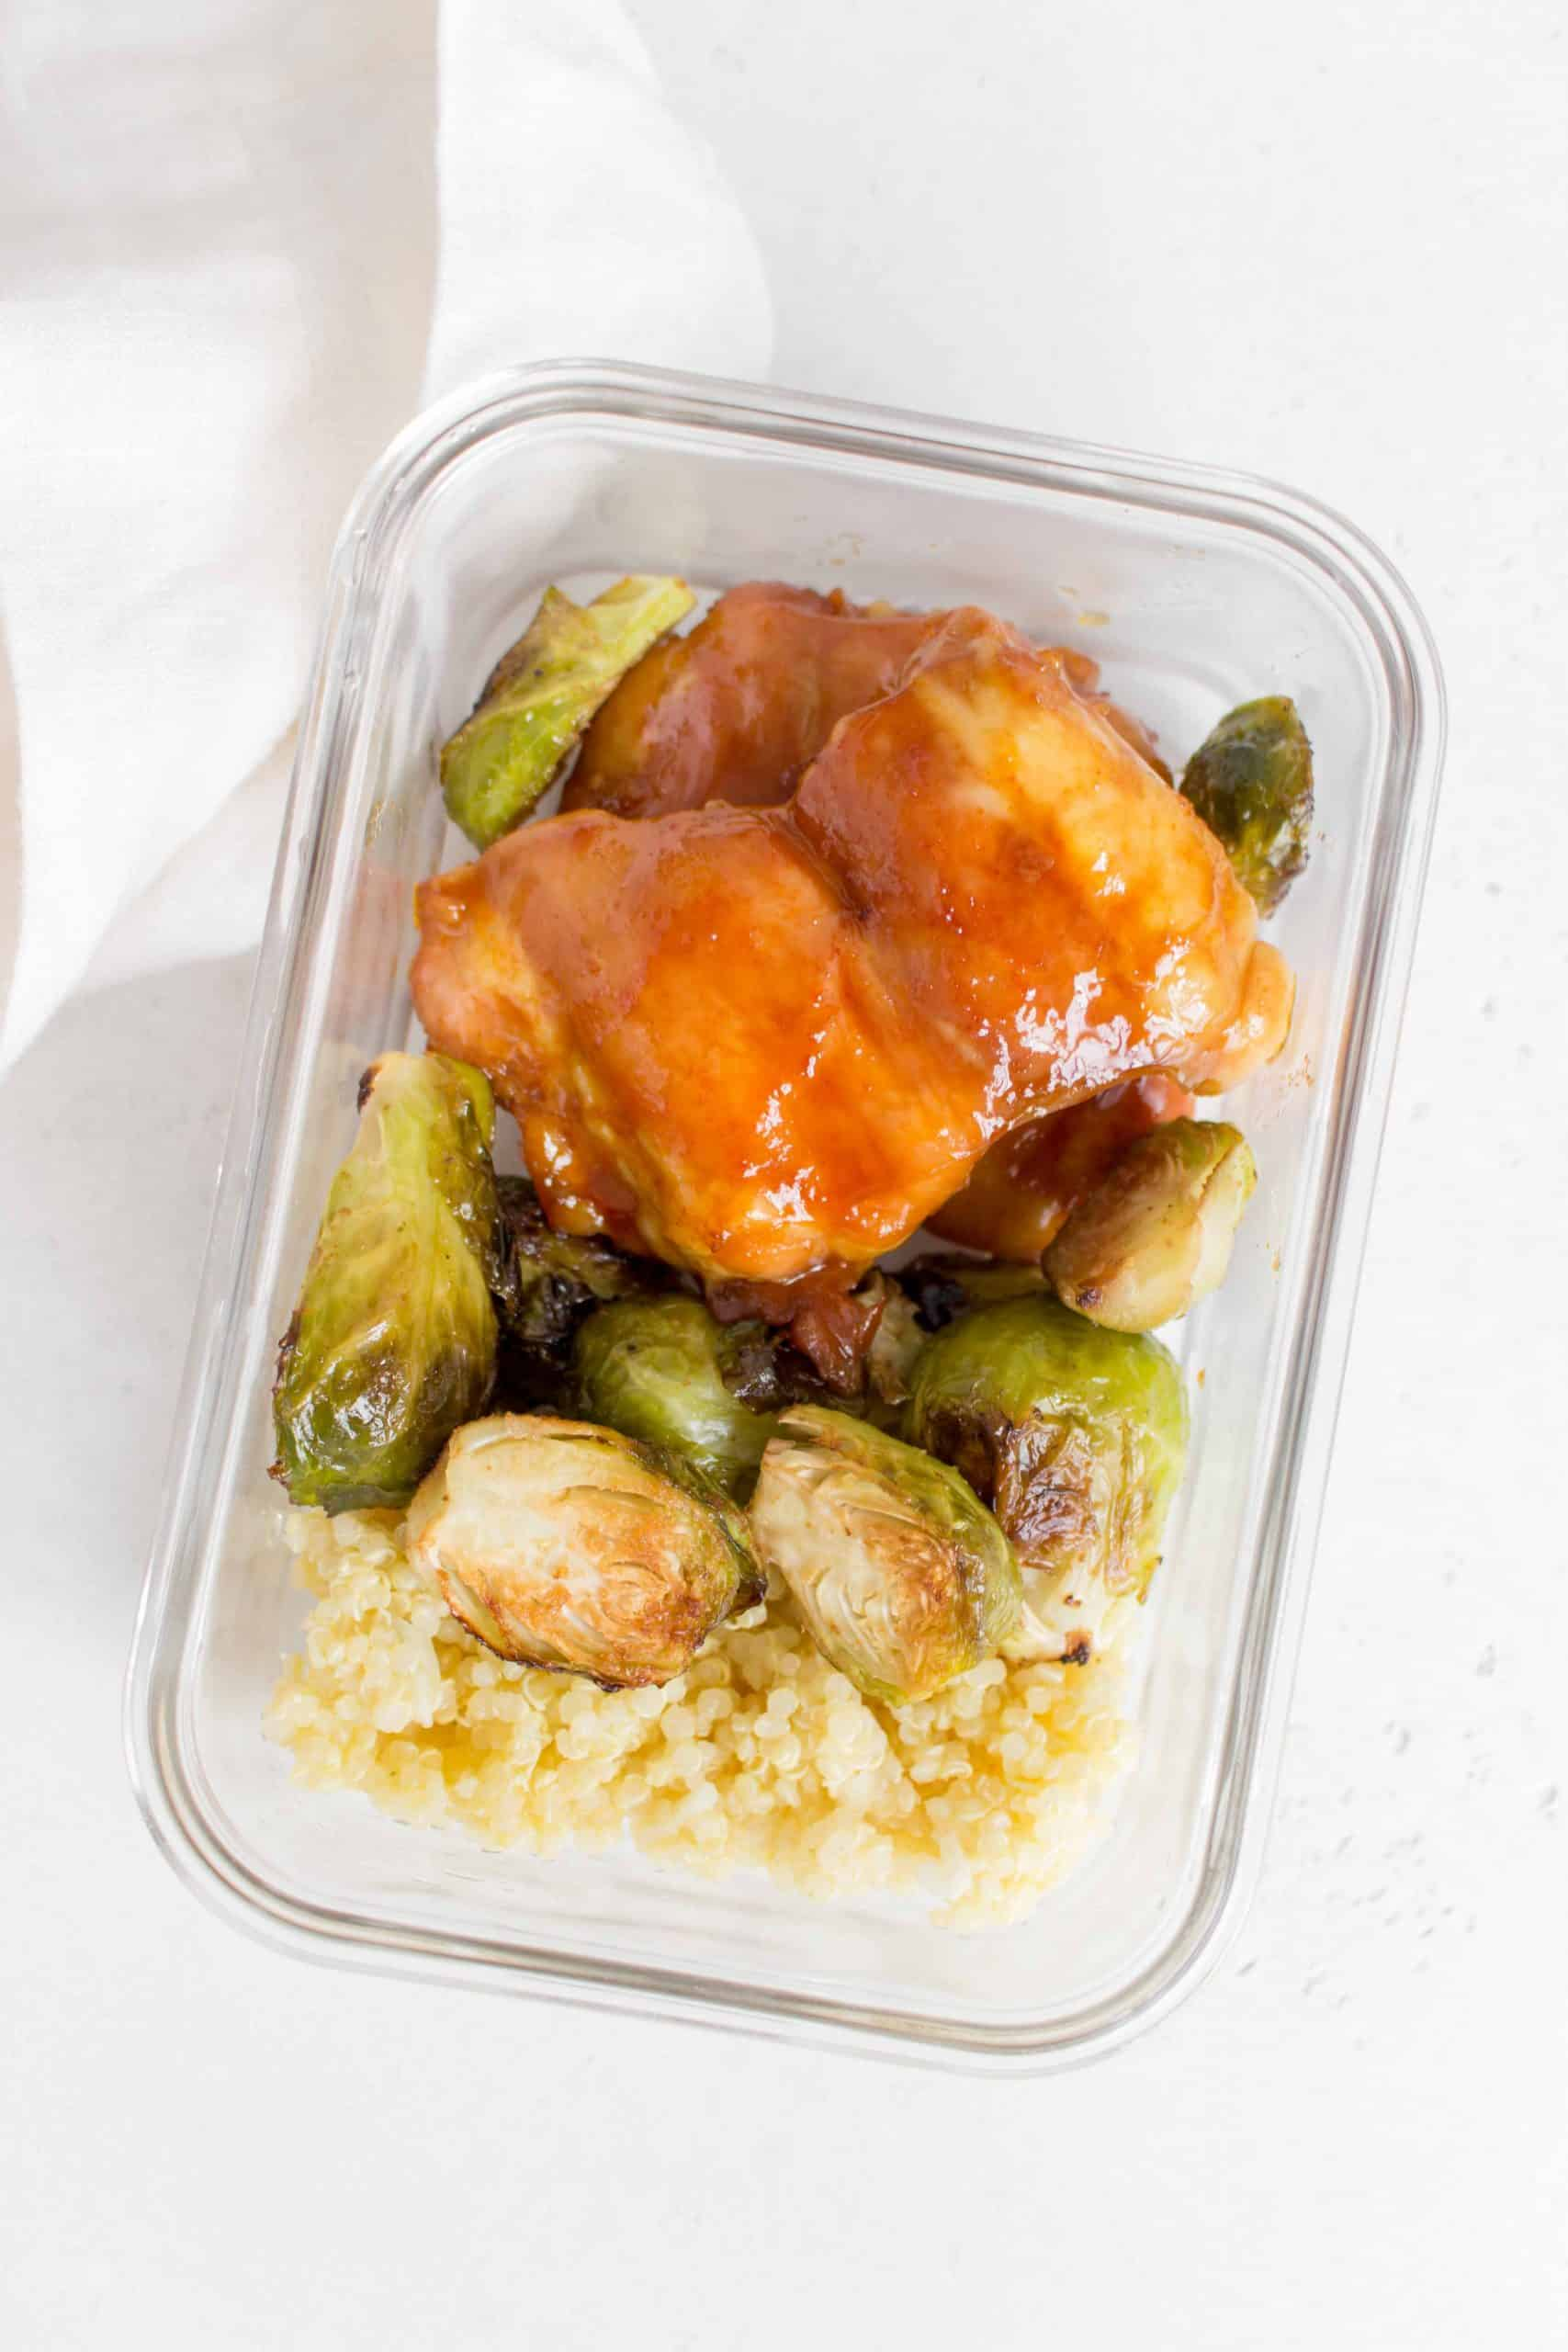 chicken thighs in meal prep container with brussels sprouts and quinoa